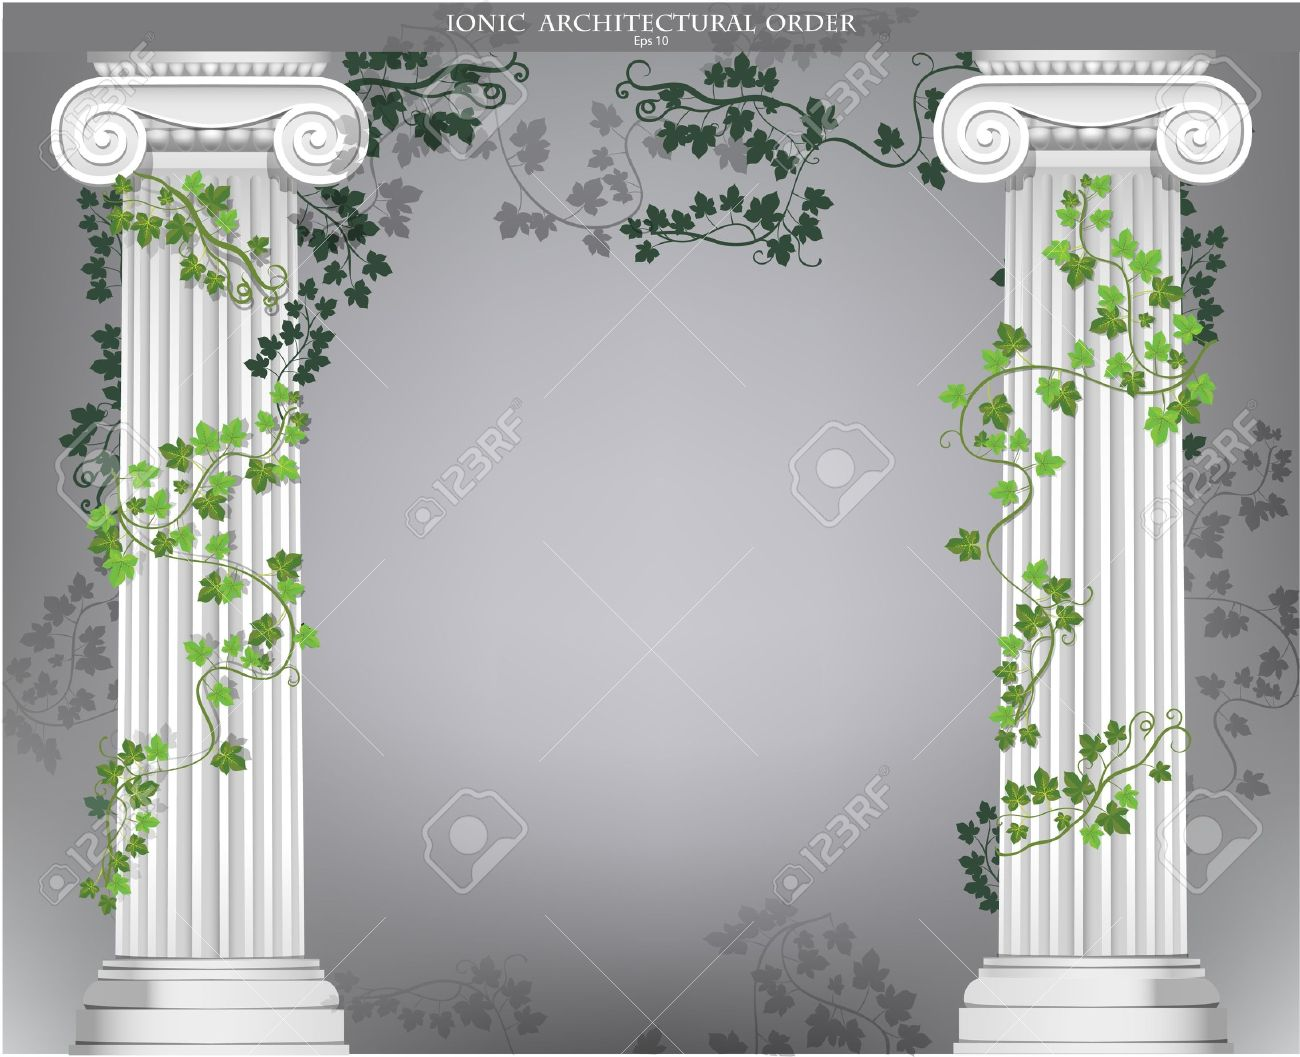 Background With Ionic Columns Entwined With Ivy Royalty 1300x1057